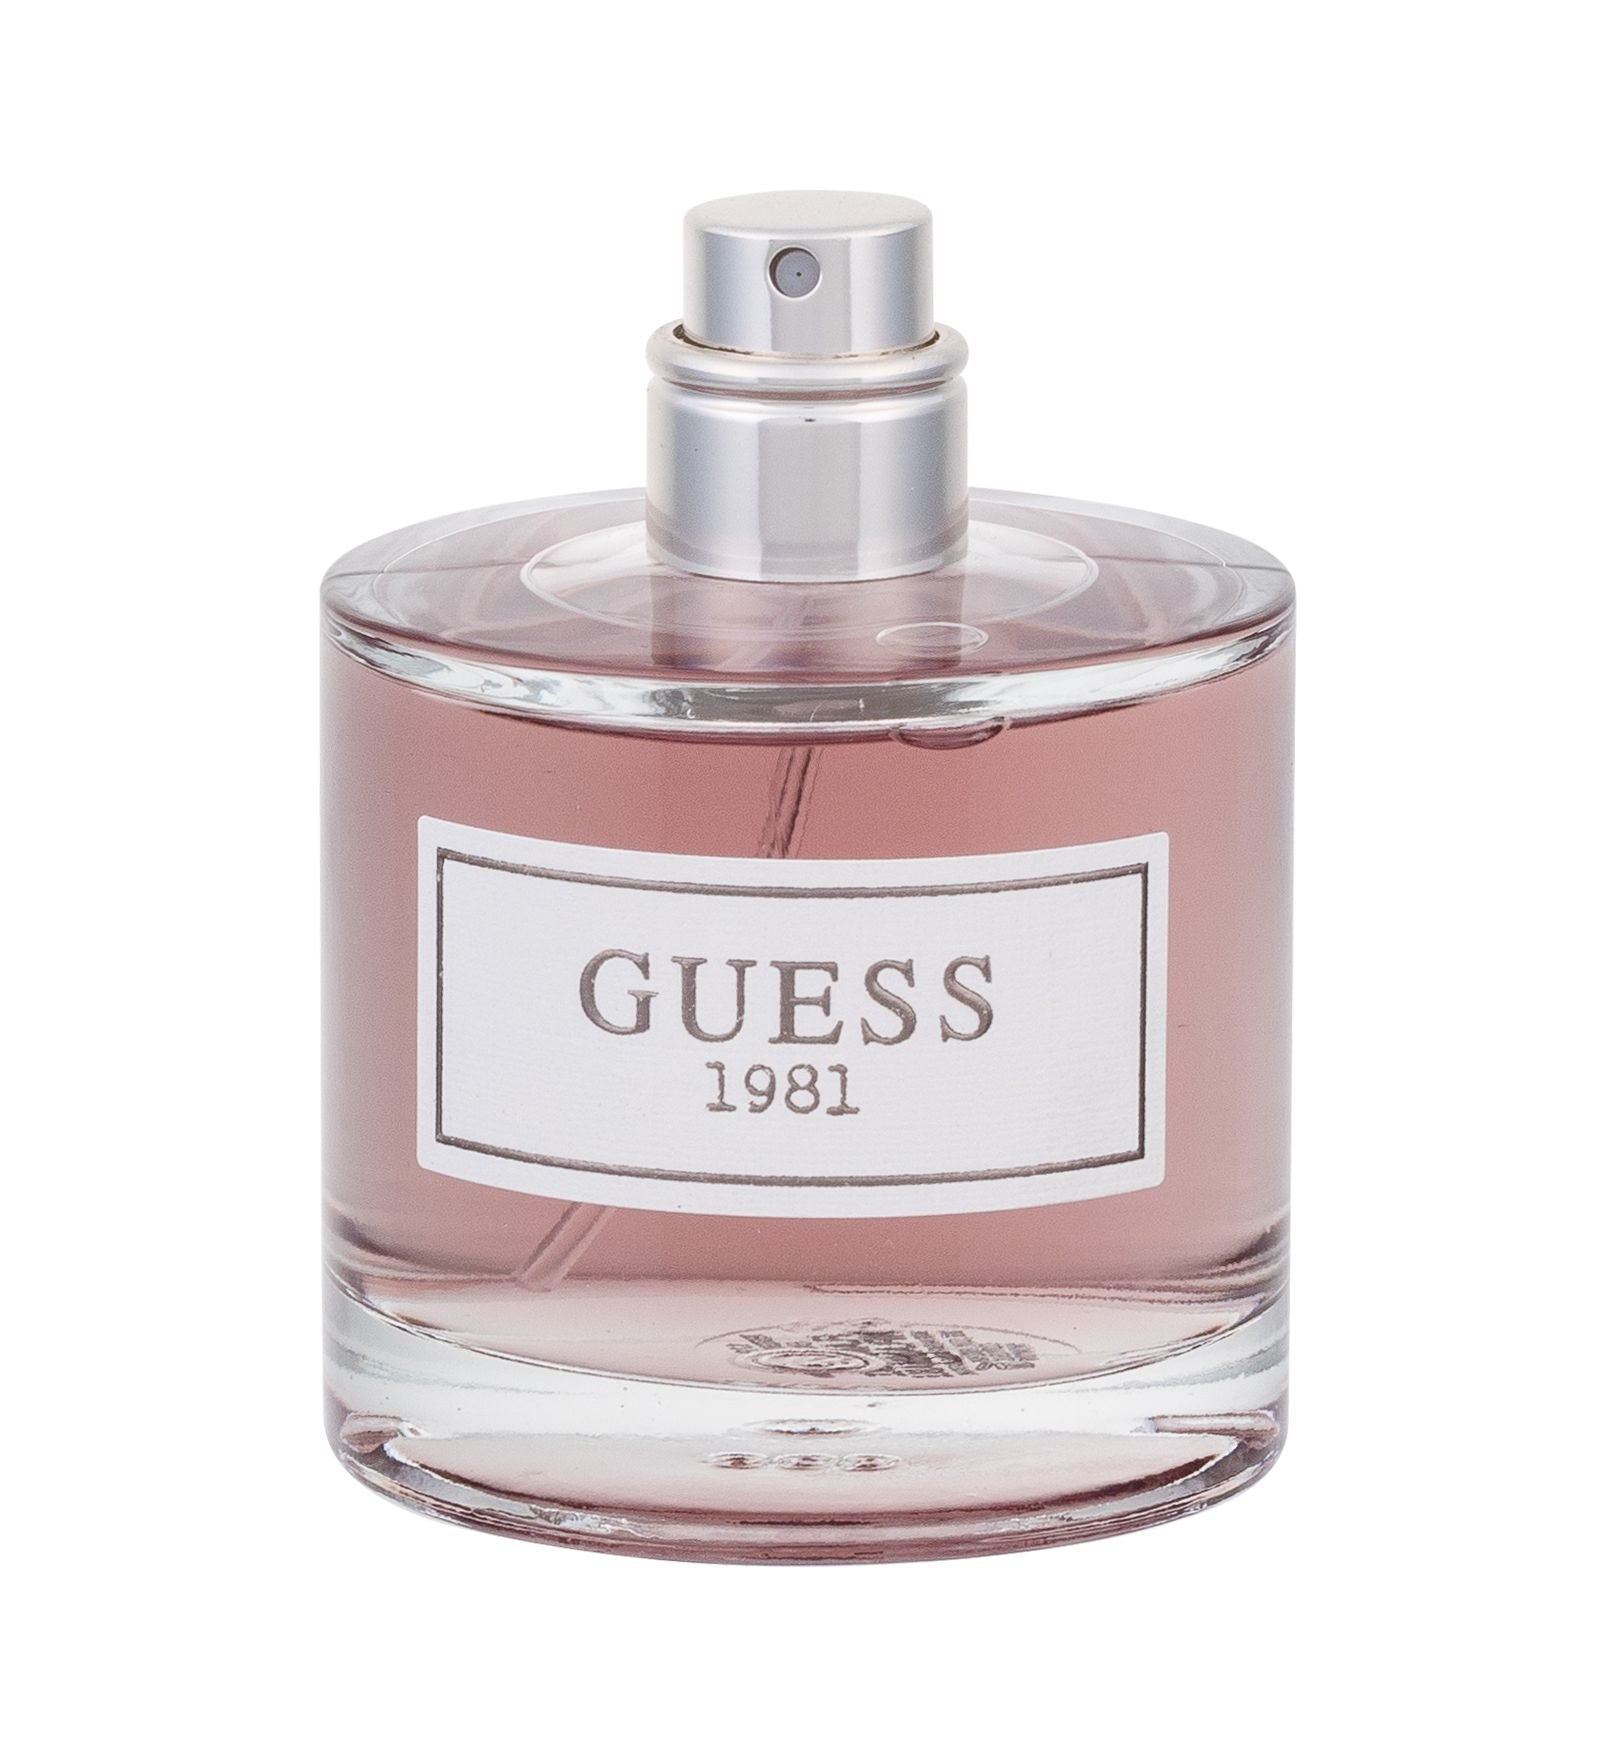 GUESS Guess 1981 Eau de Toilette 50ml